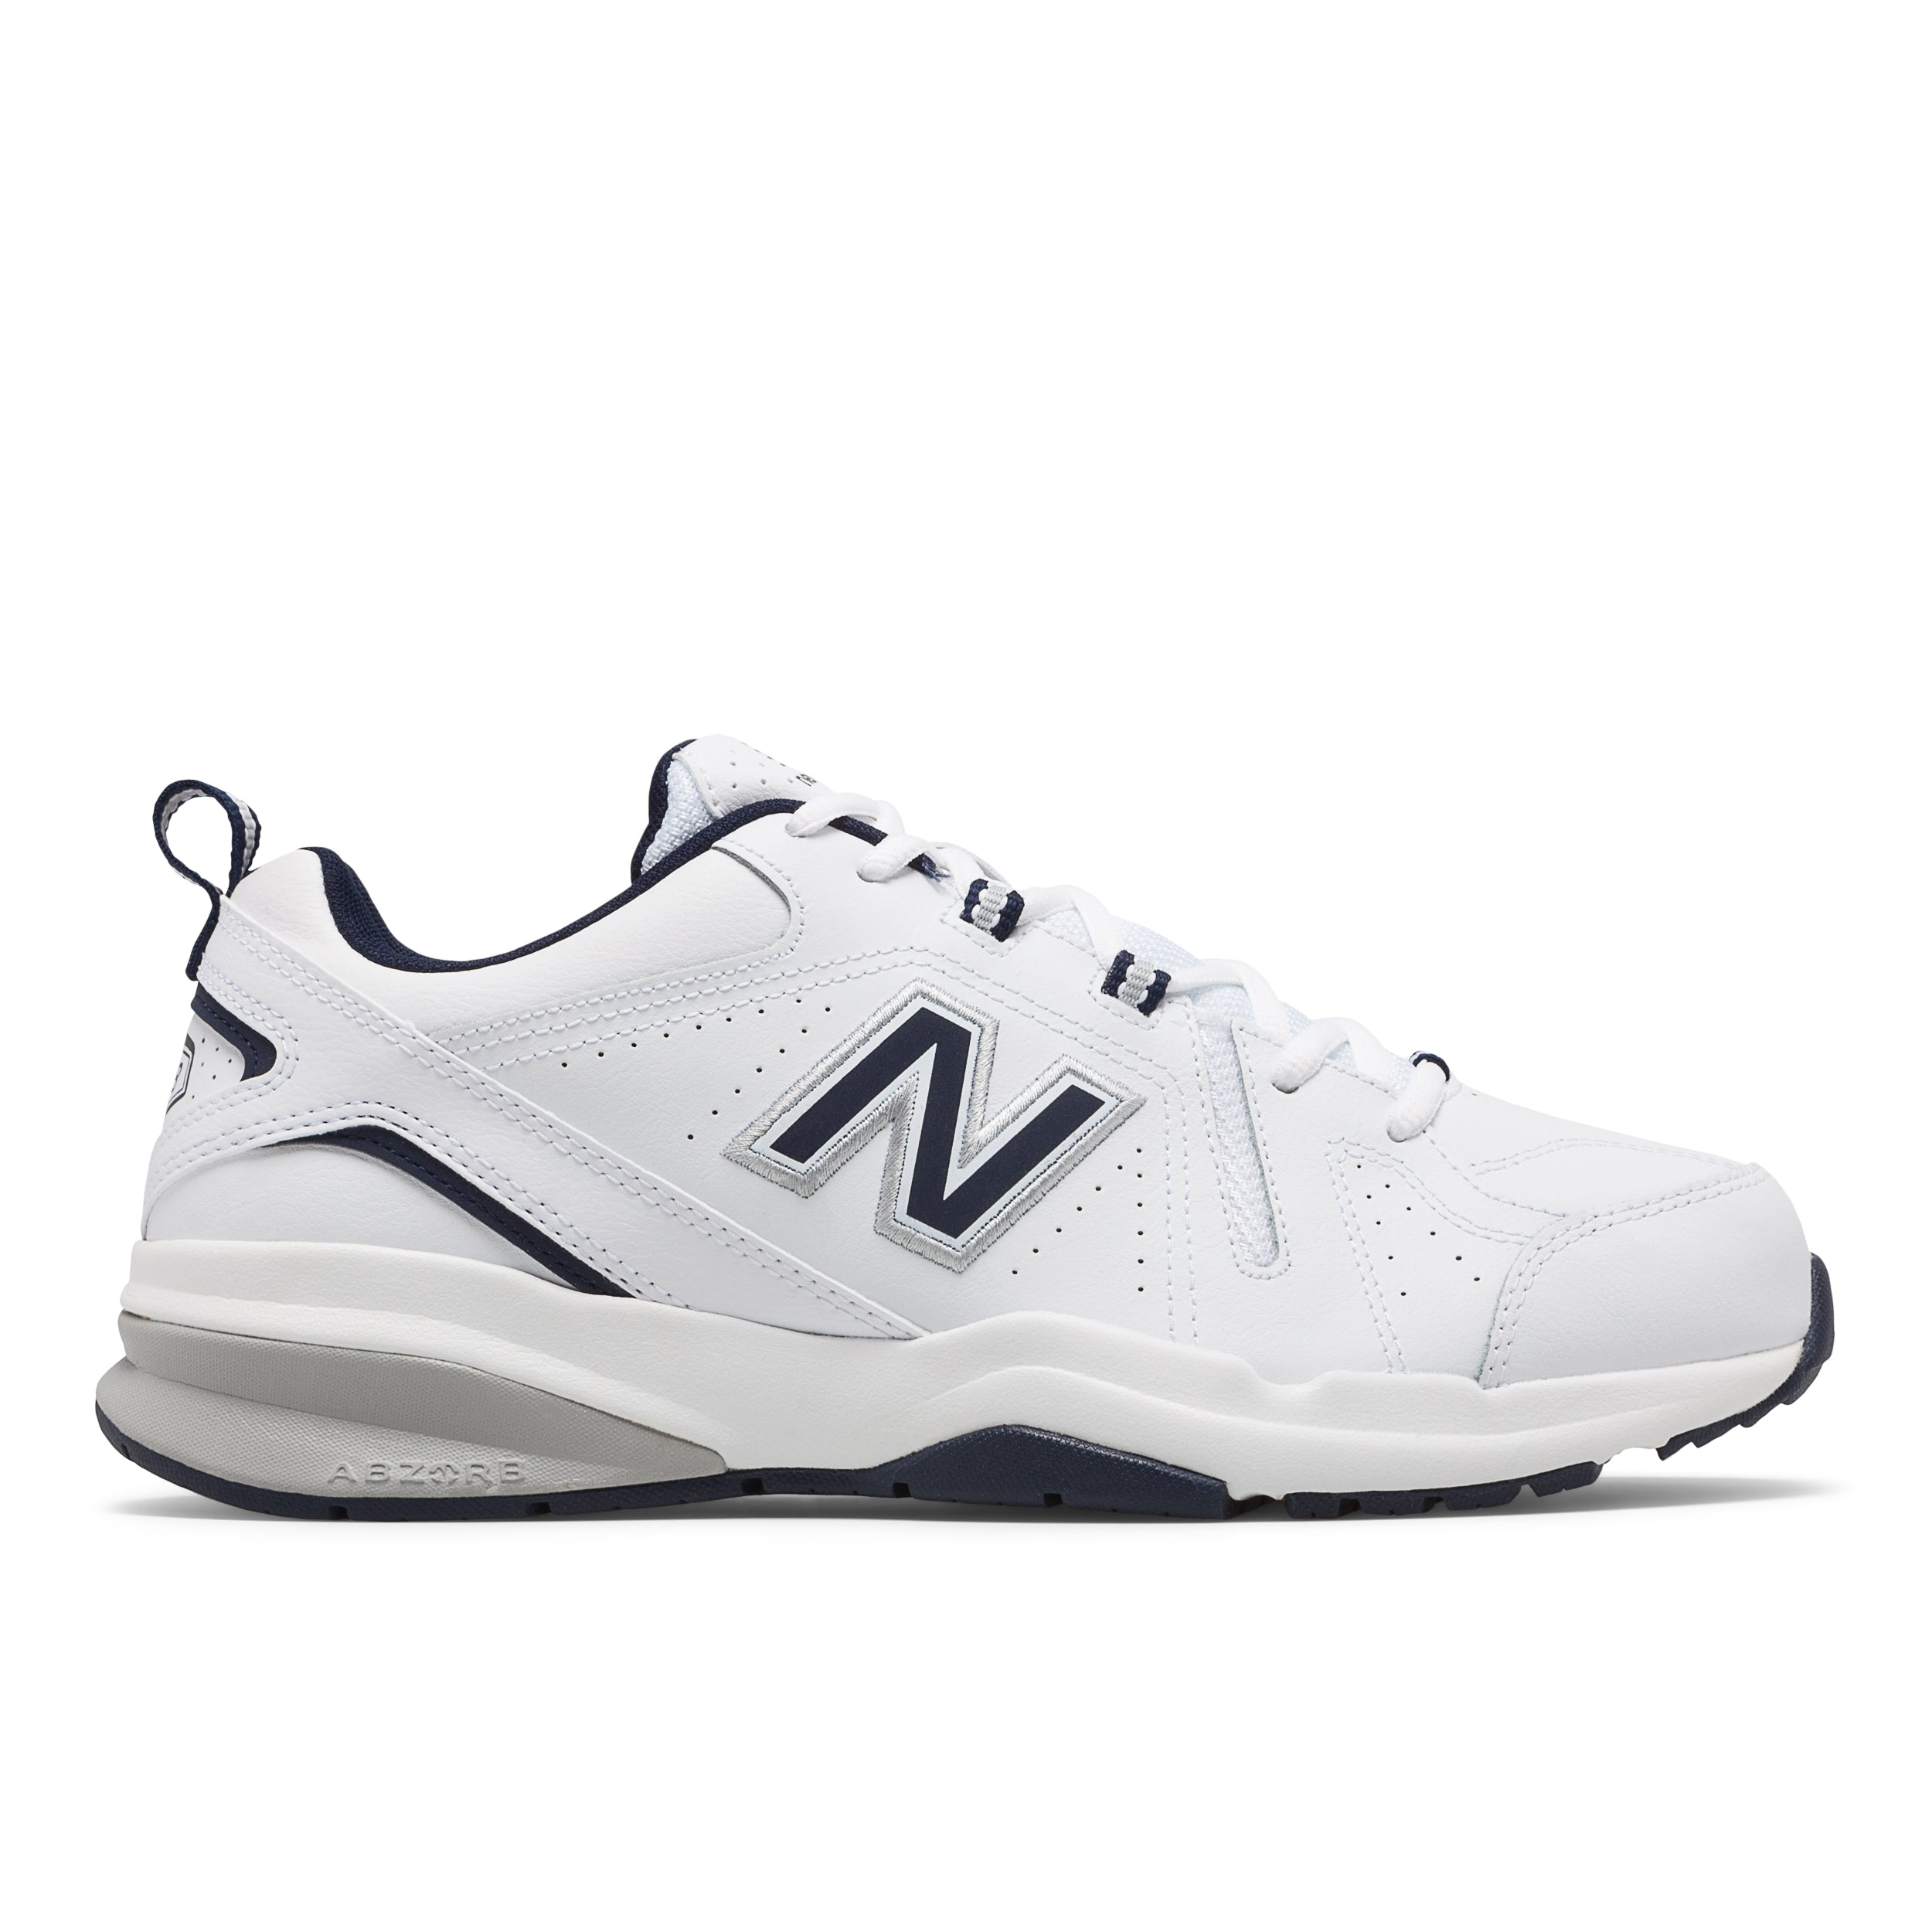 'New Balance' Men's 608v5 Trainer - White / Navy